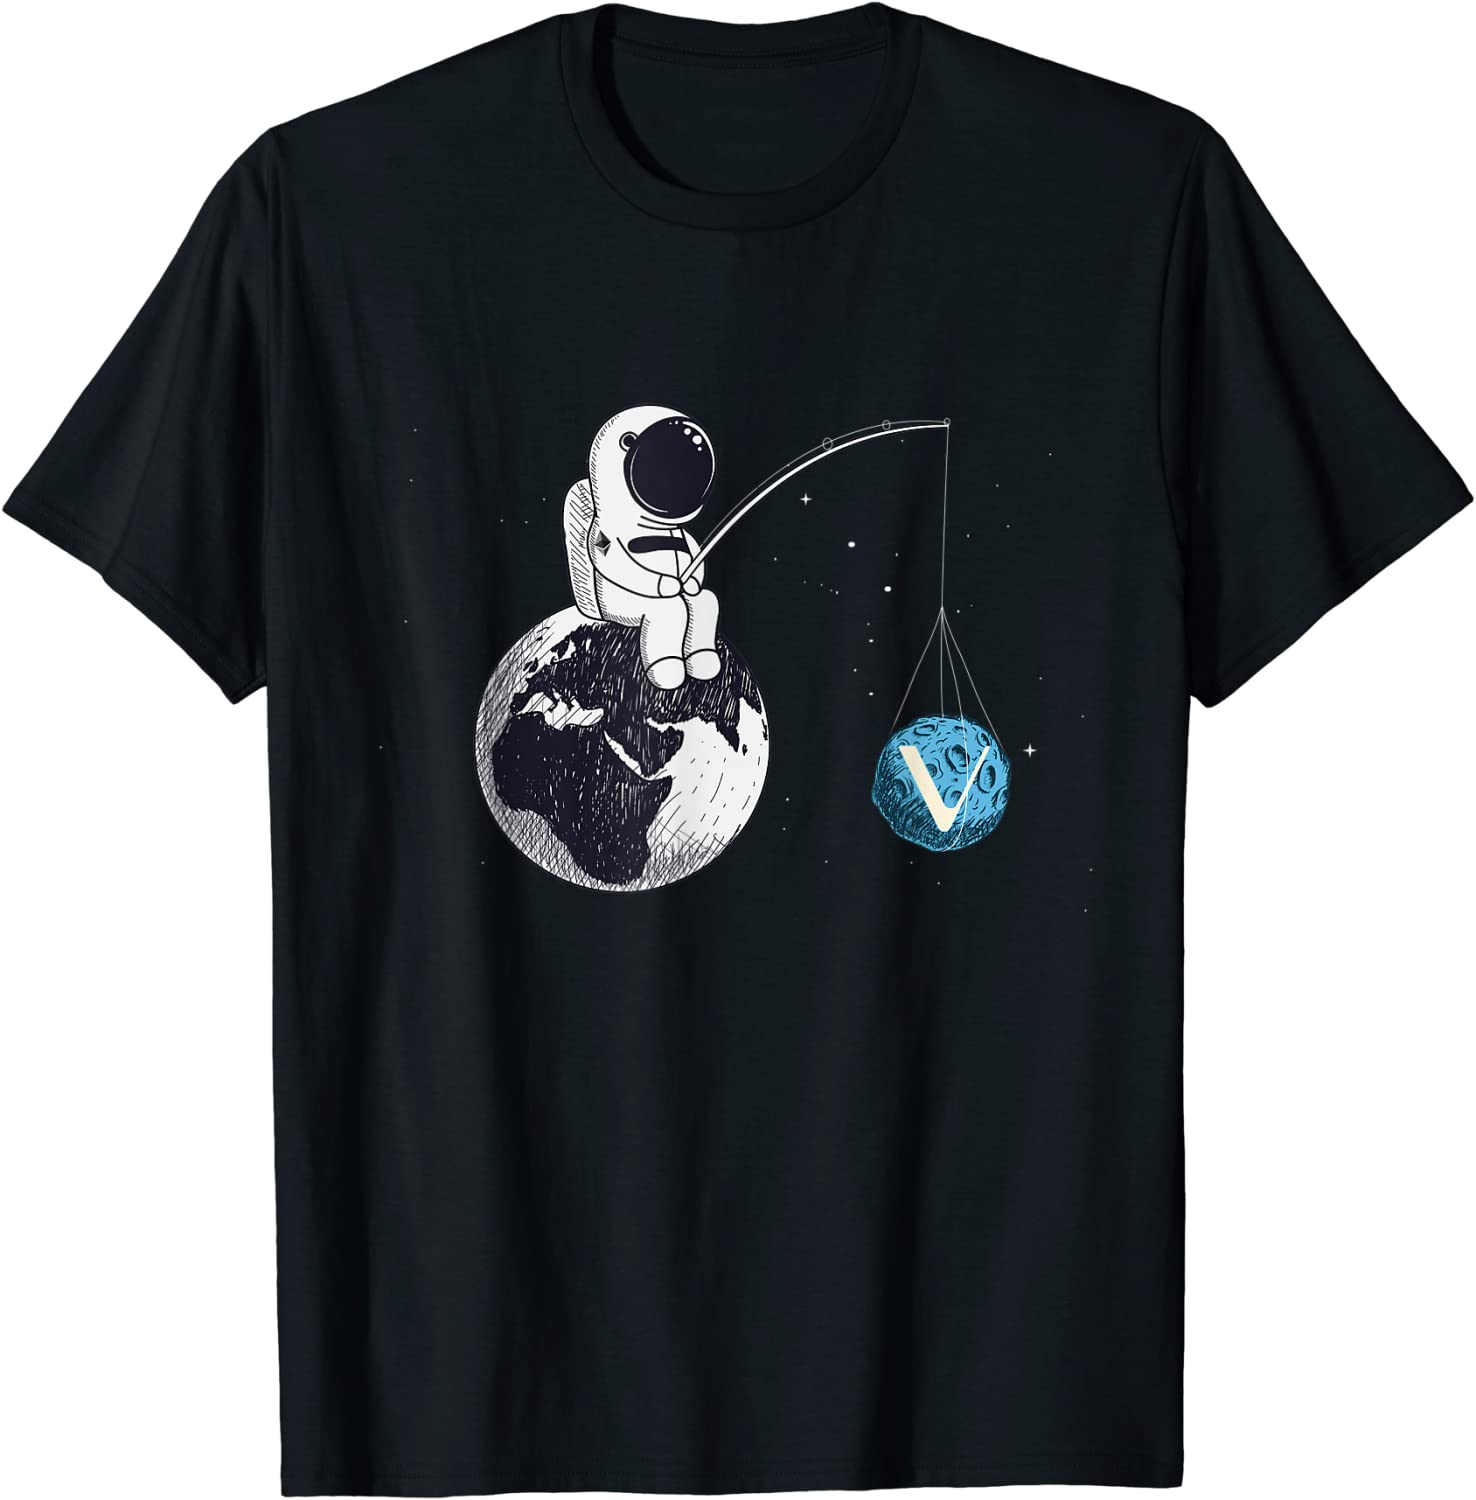 Cryptocurrency Talk - Vechain To The Moon Space Man Merch T-Shirt